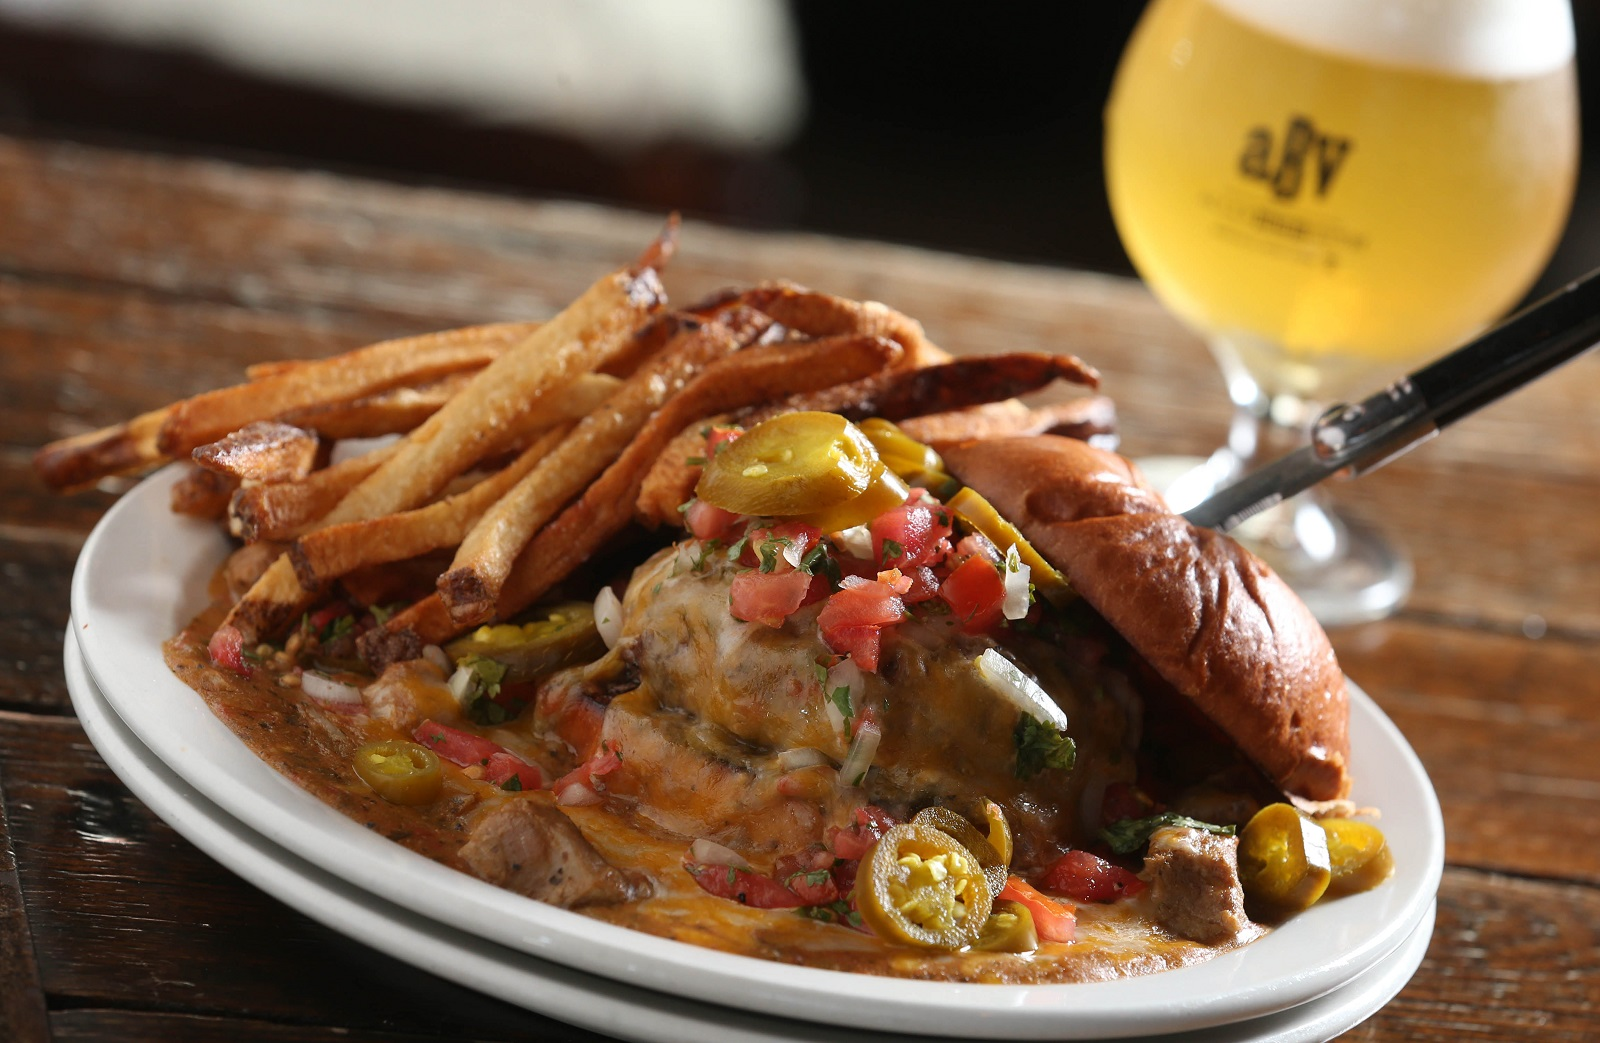 Colorado pork green chile burger from Allen Burger Venture. (Sharon Cantillon/Buffalo News)